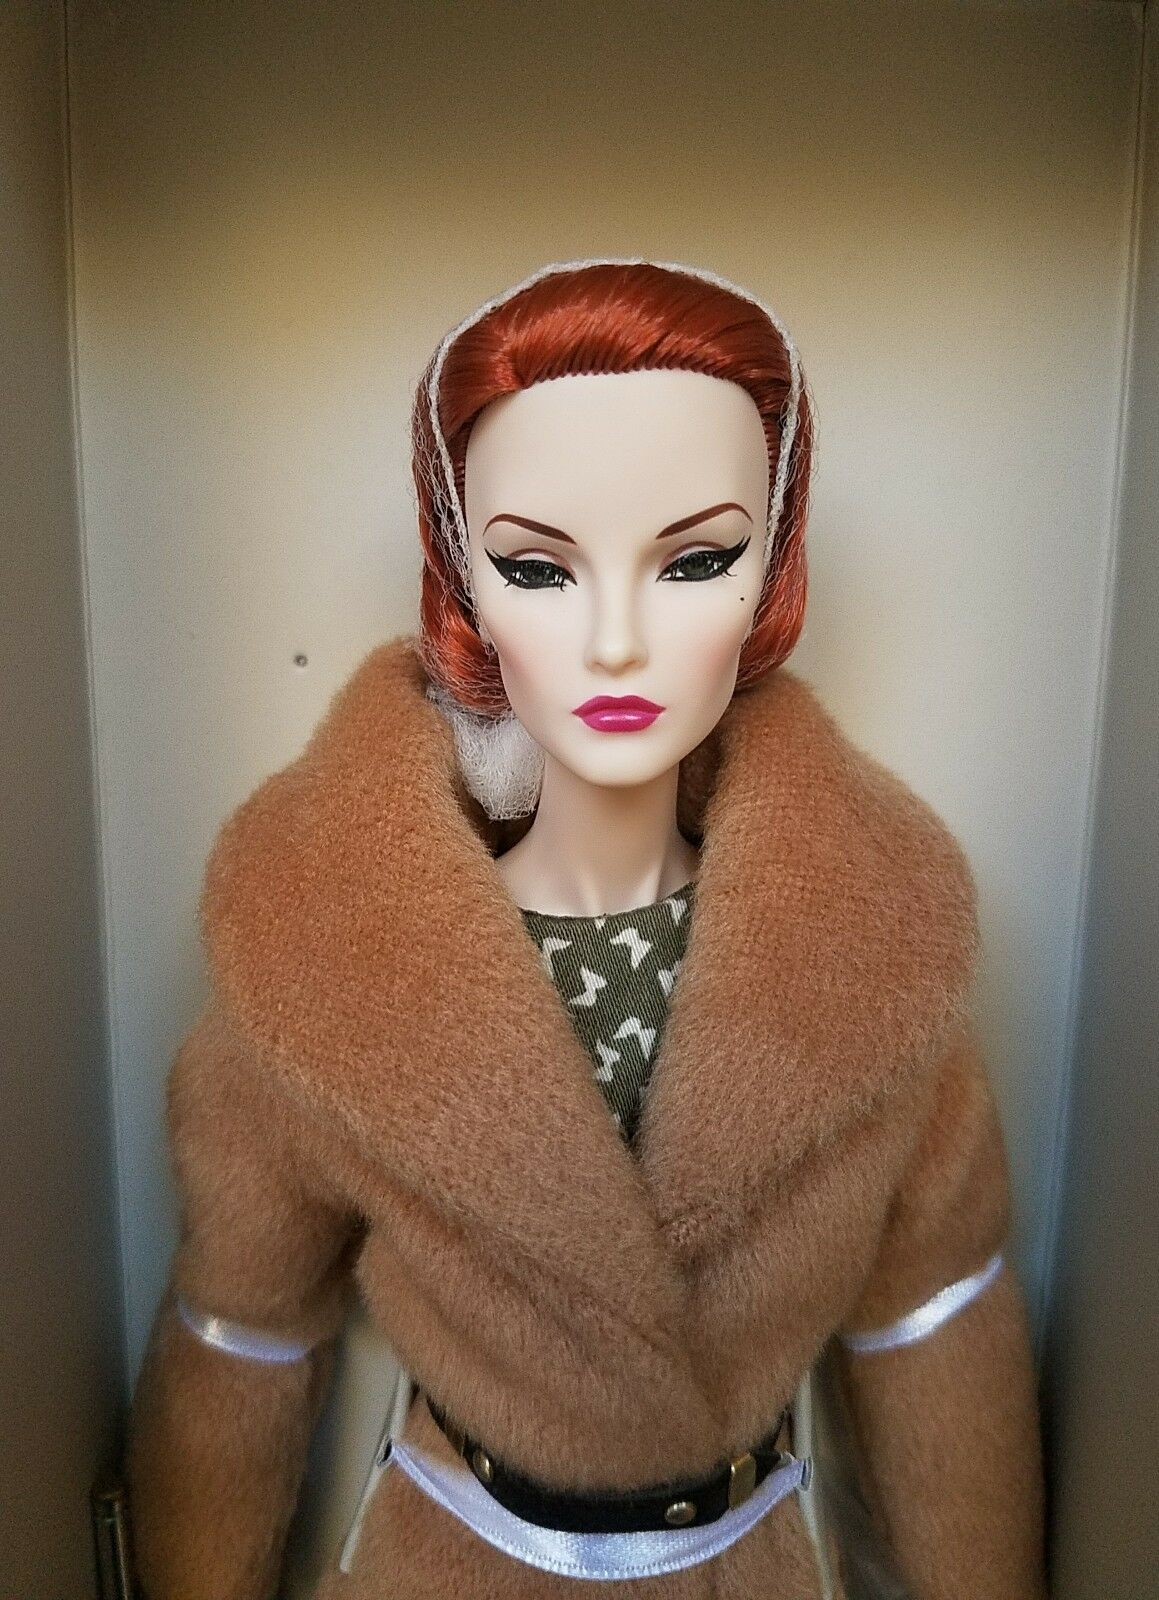 NRFB FINE PRINT ELISE JOLIE FASHION ROYALTY INTEGRITY Doll